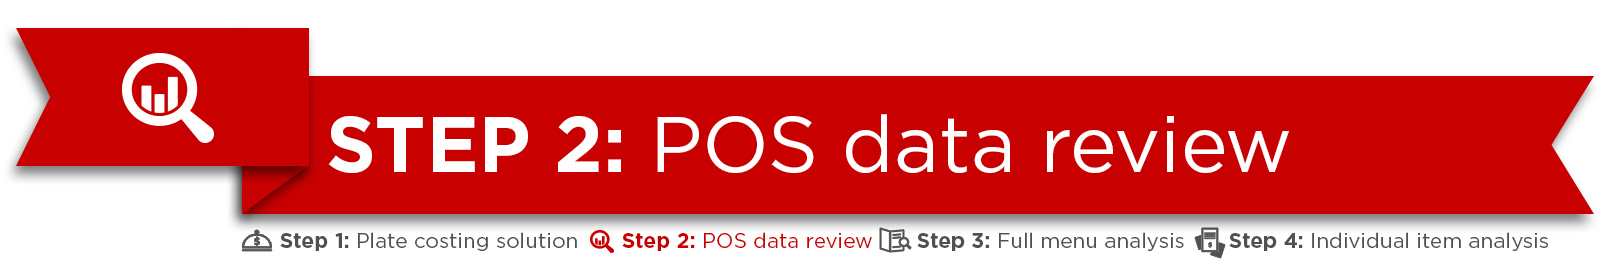 Step 2: POS Data Review